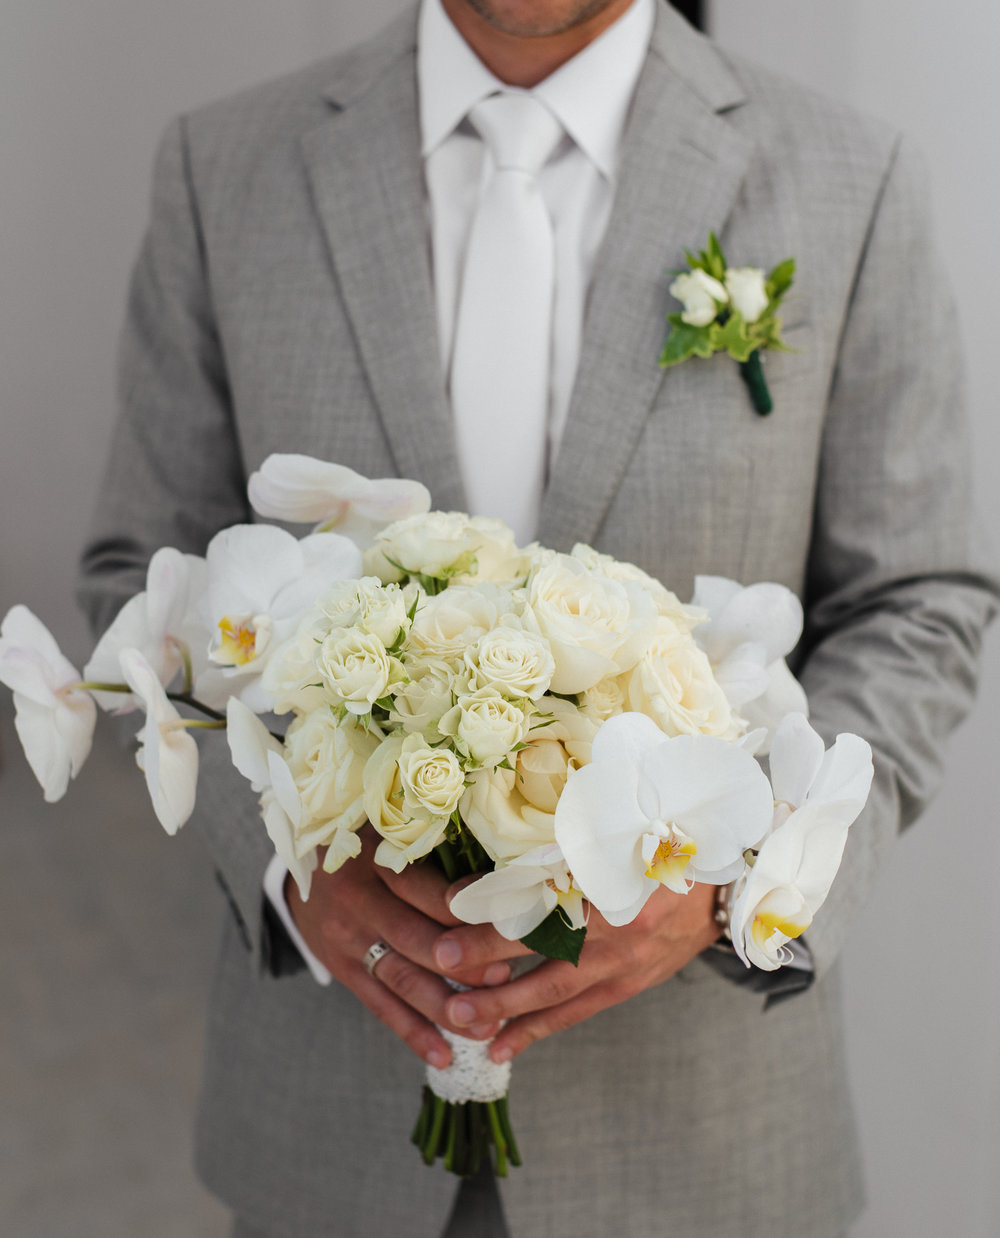 santorini-island-greece-wedding-celebration-ceremony-bouquet-white-orchids-white-roses-groom-bride-rocabella-hotel-silkentile-event-planning-firm